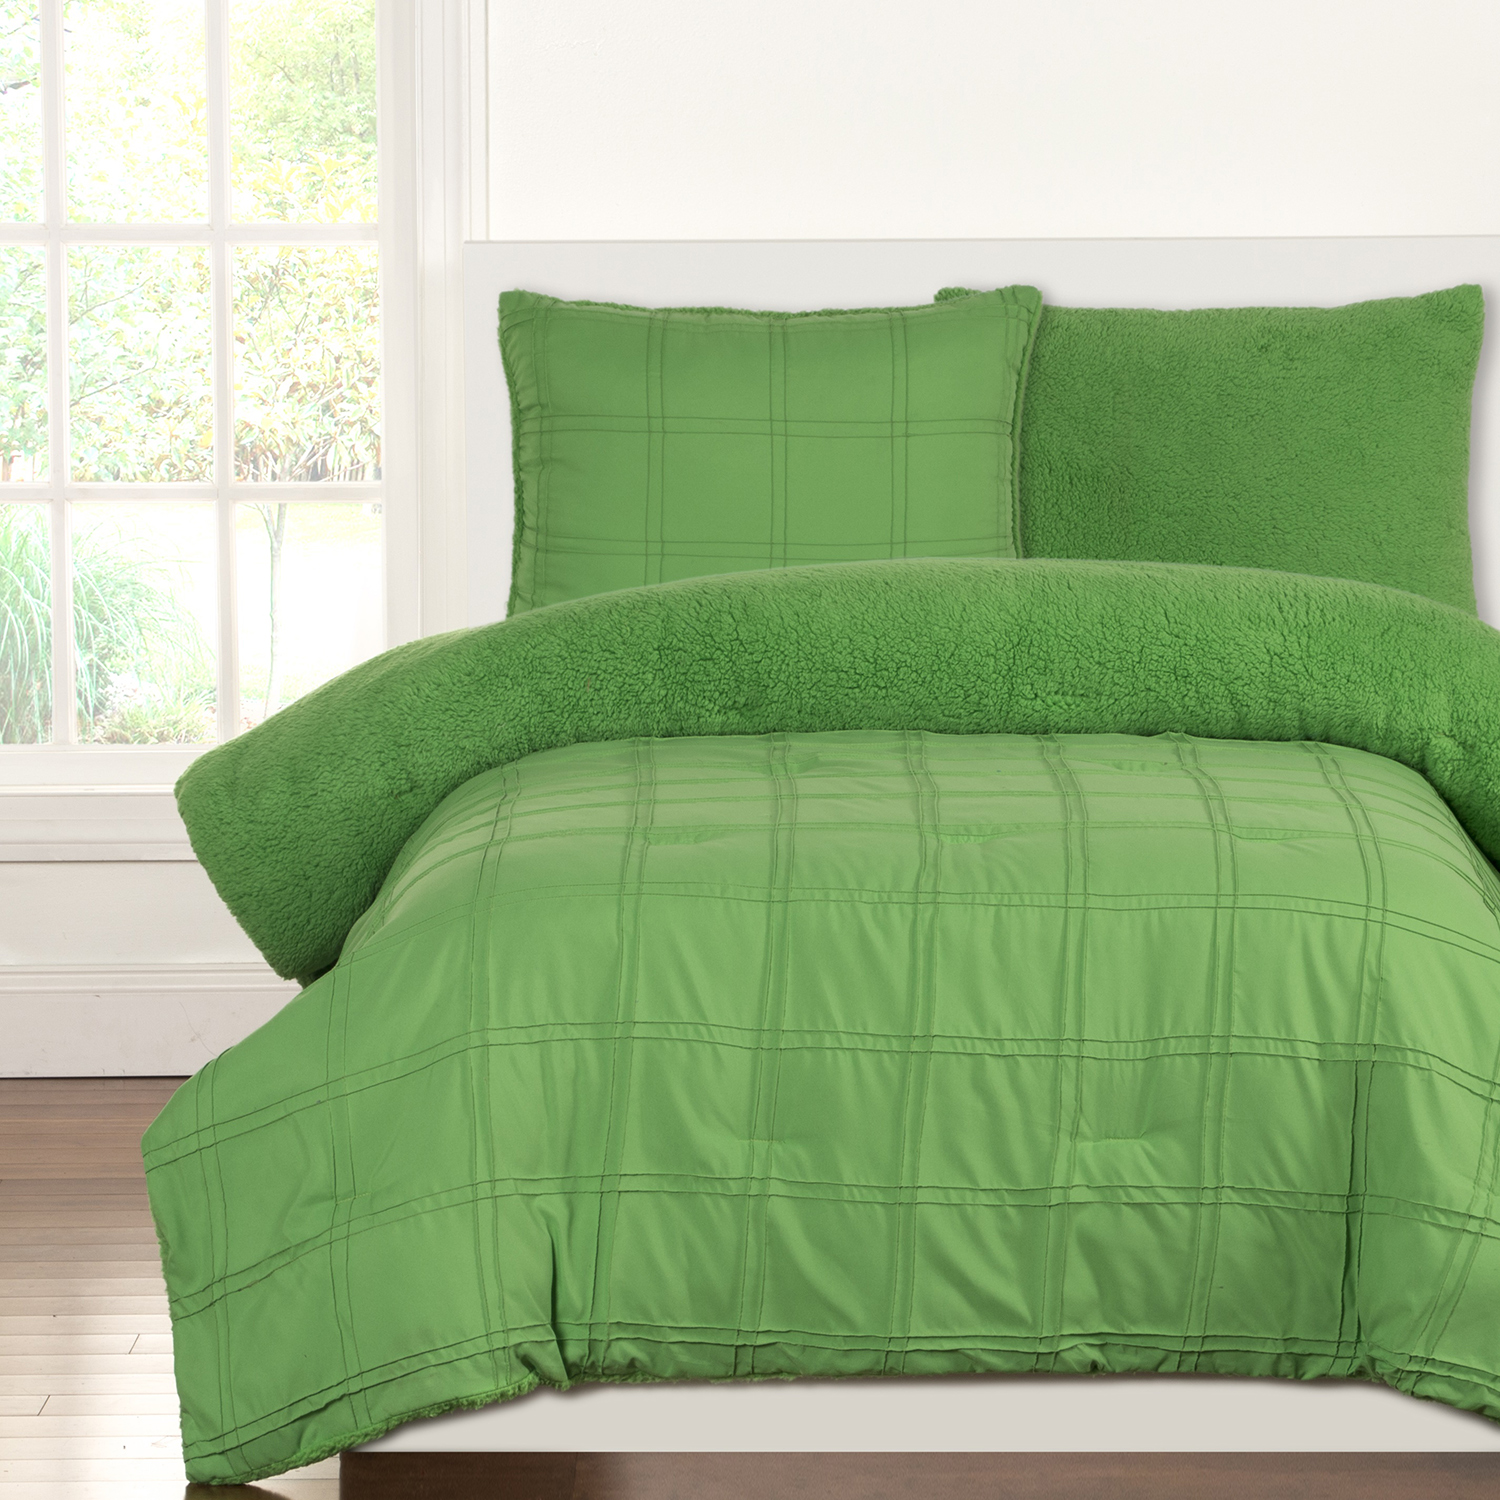 Playful Plush Jungle Green By Crayola Bedding